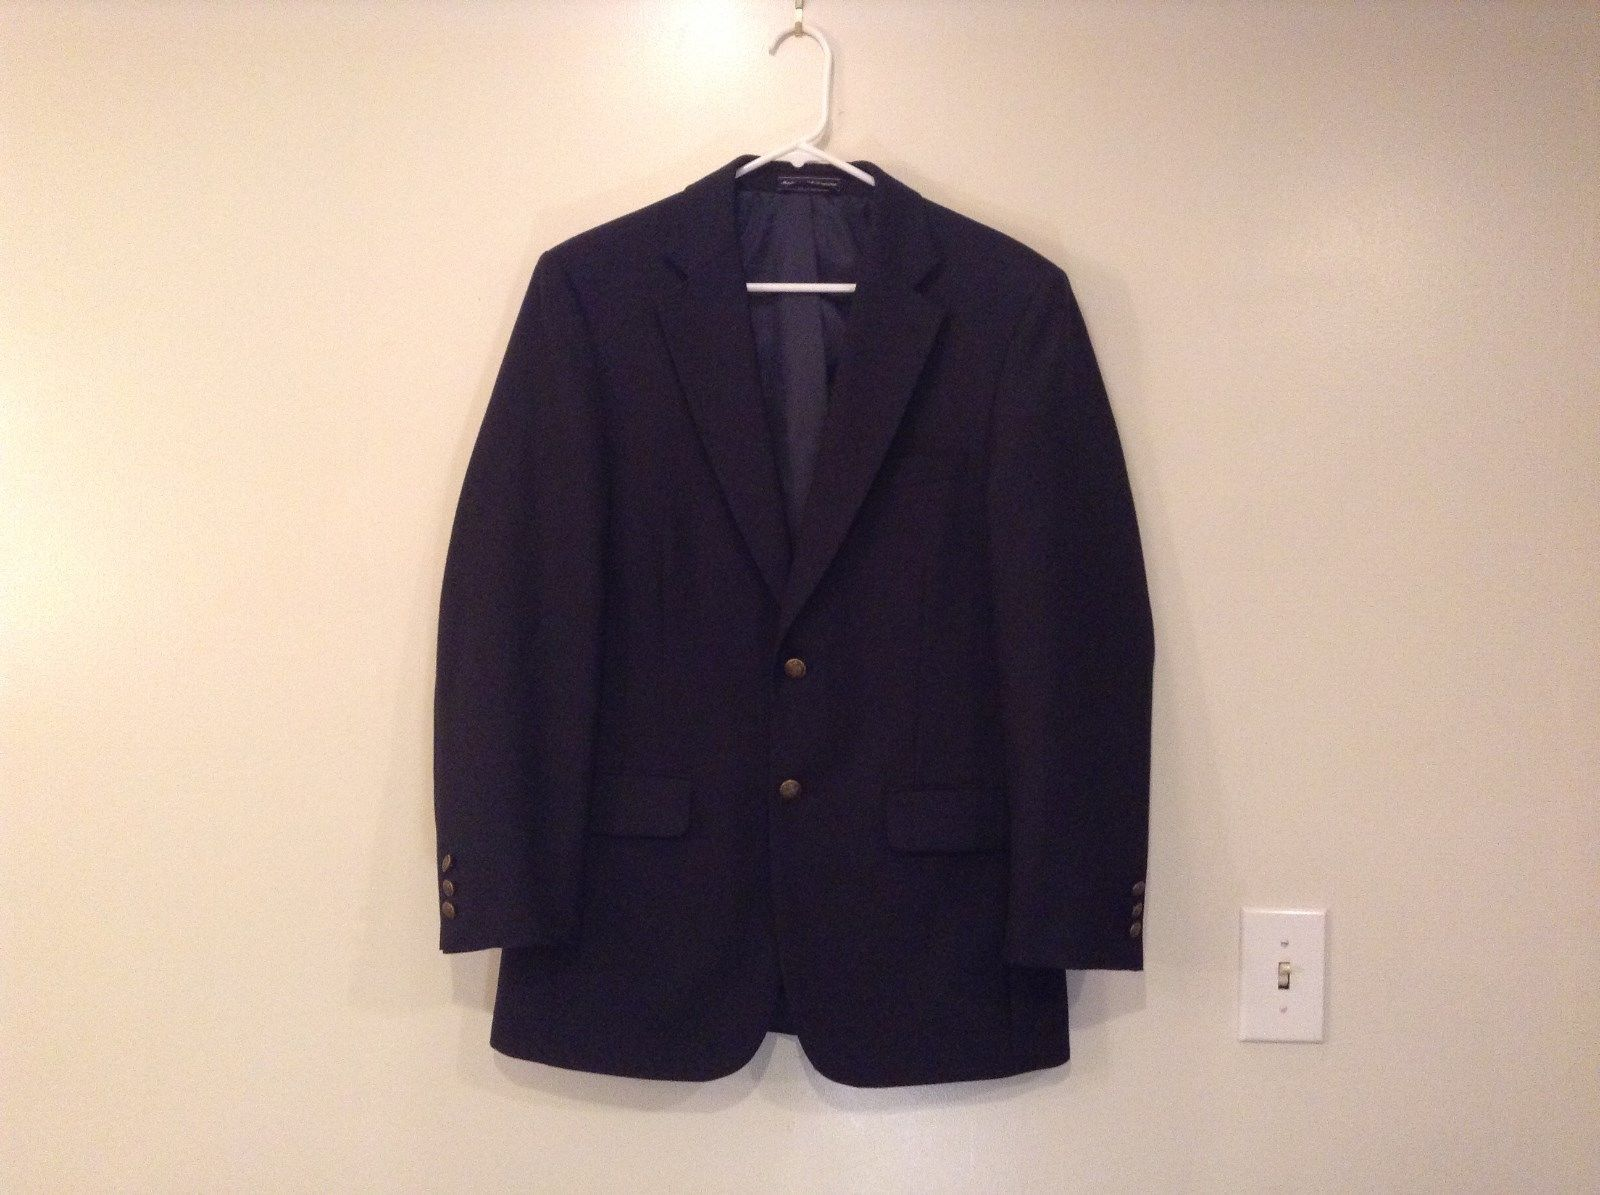 Navy Blue Fully Lined Sport Jacket Blazer 2 Button Closure Size 38R